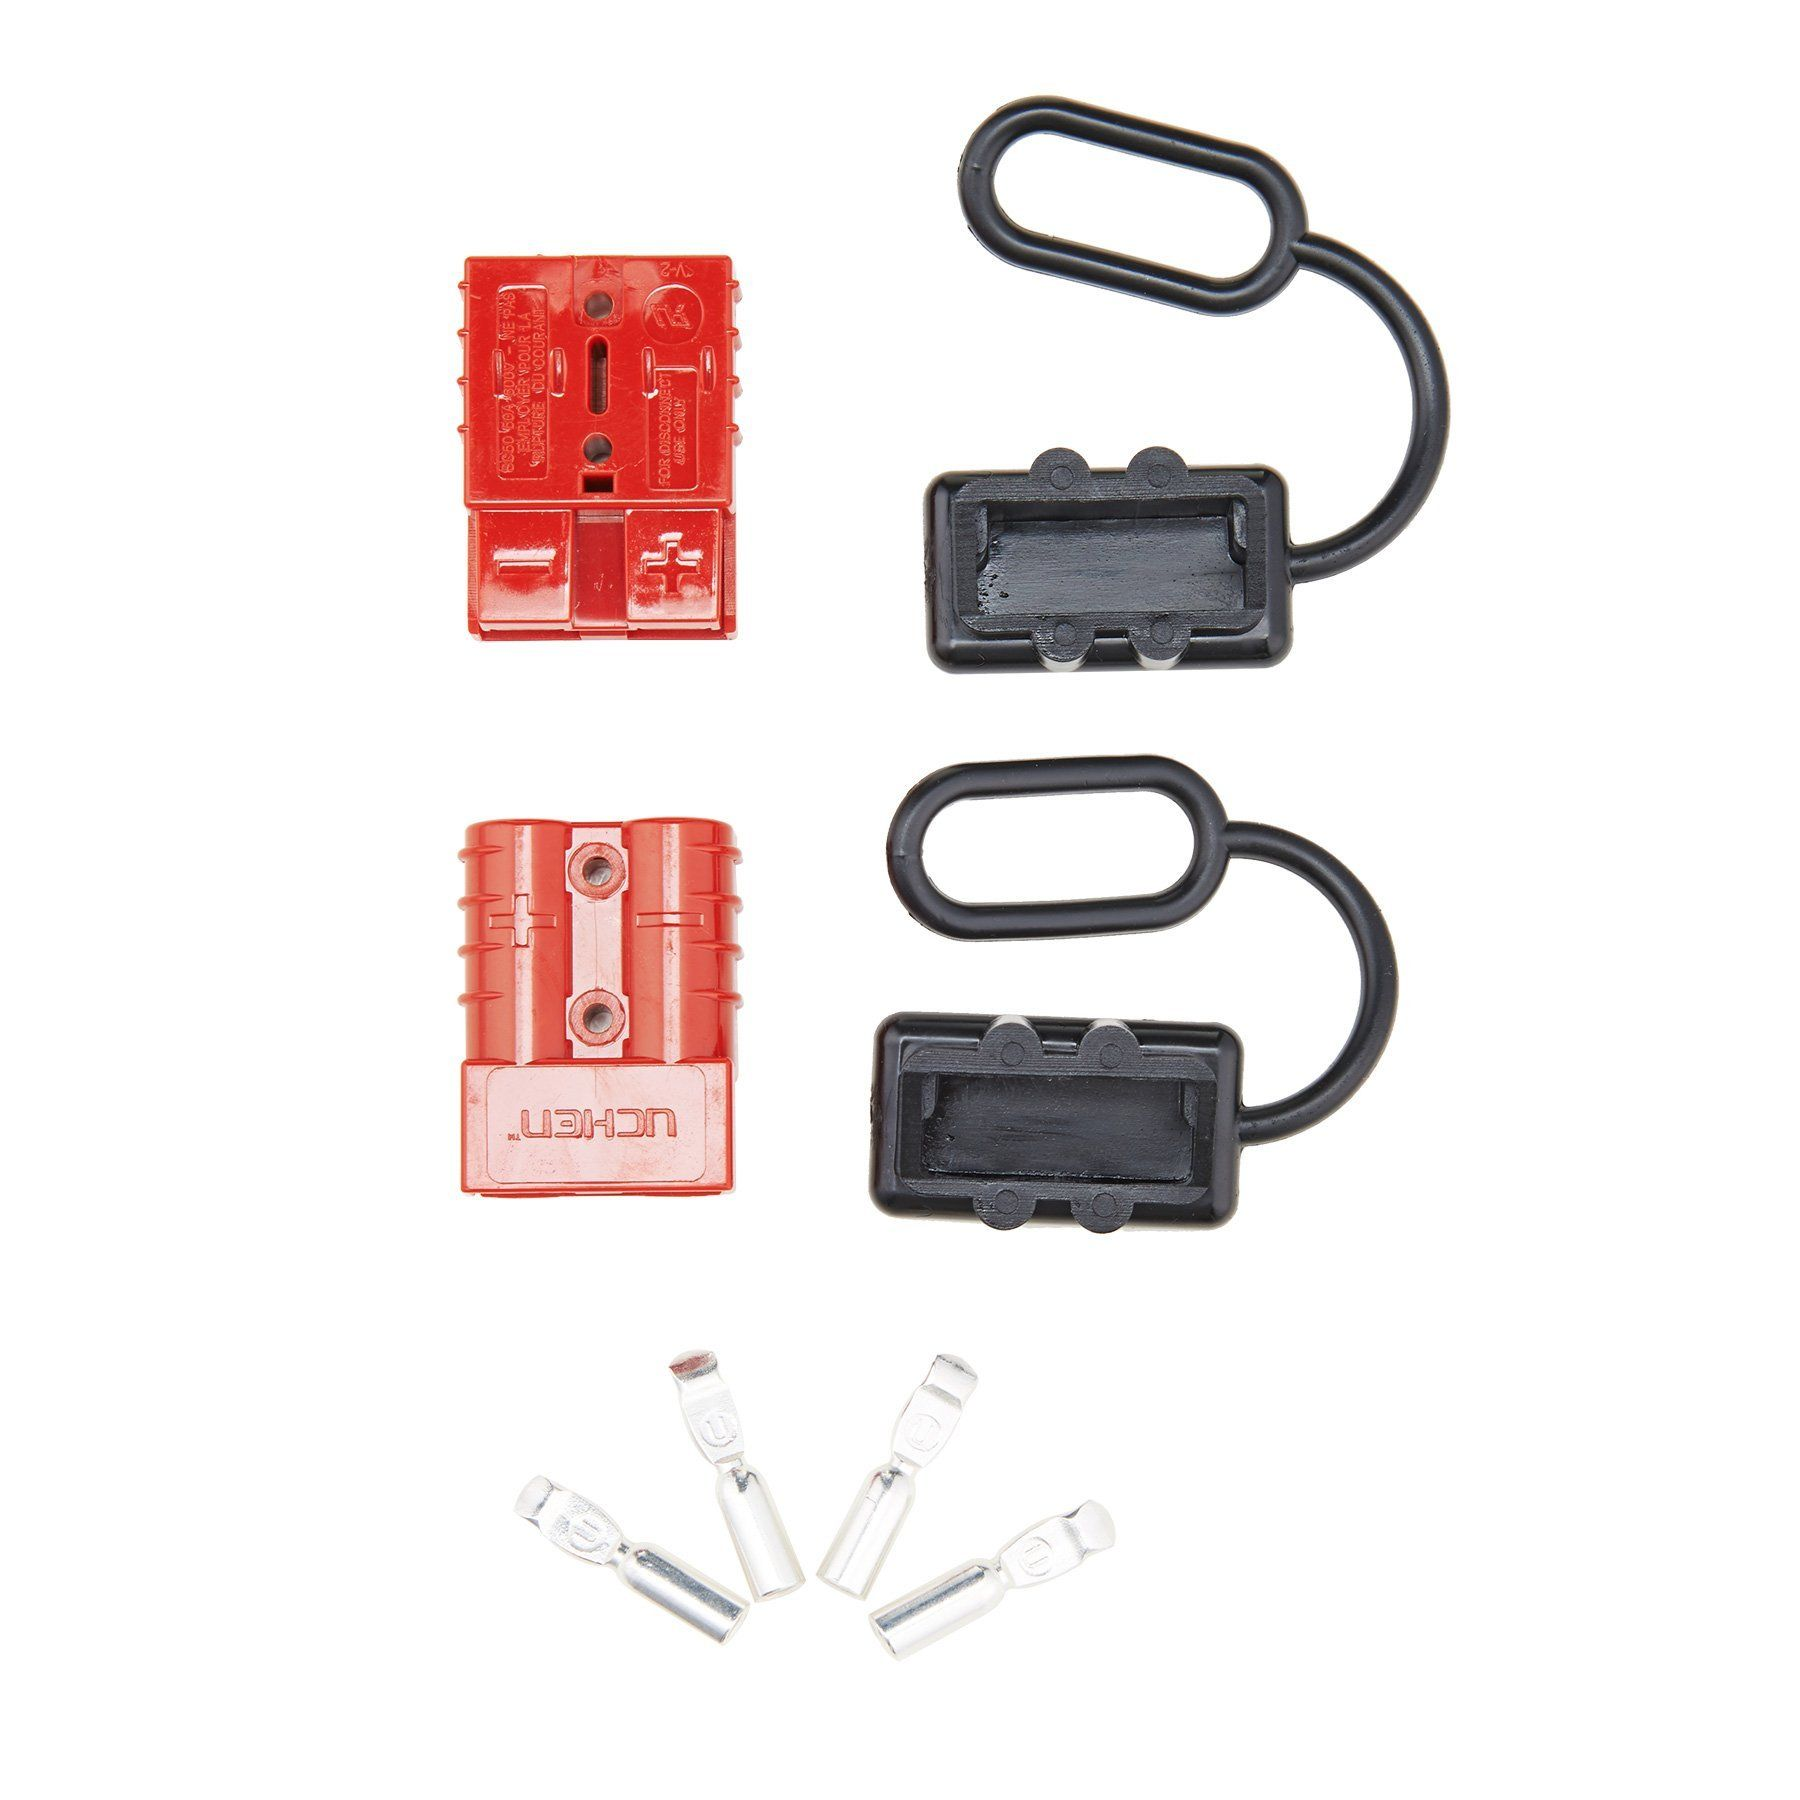 medium resolution of orion motor tech 68 gauge battery quick connect disconnect wire harness plug kit for recovery